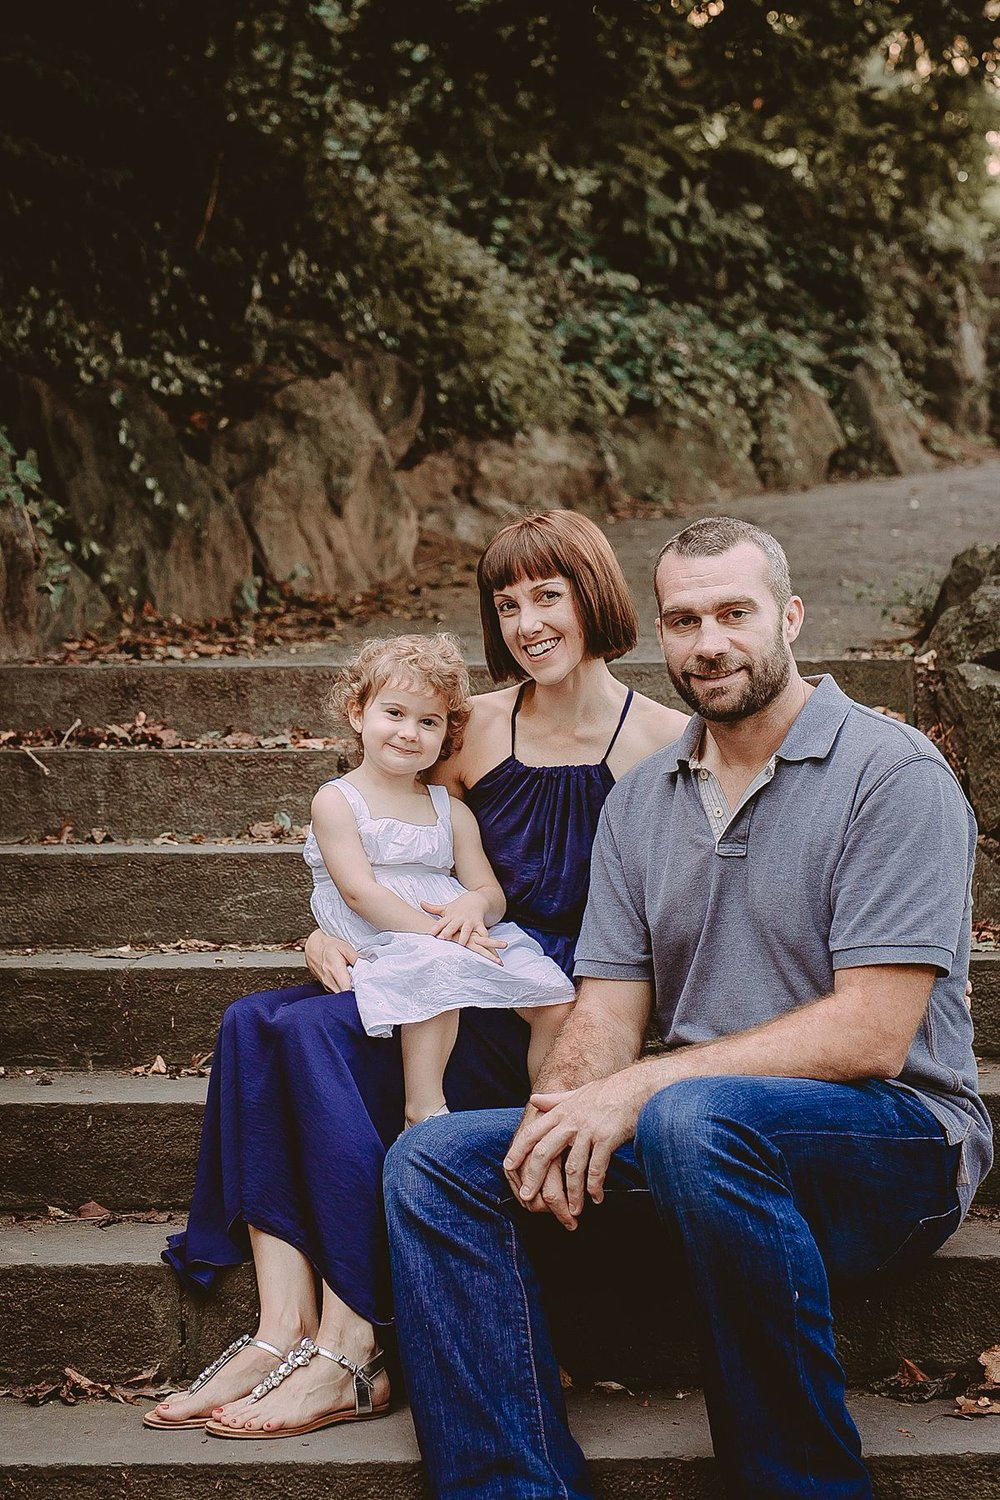 family portrait on stairs in fort tryon park during family lifestyle session. image by photographer krystil mcdowall